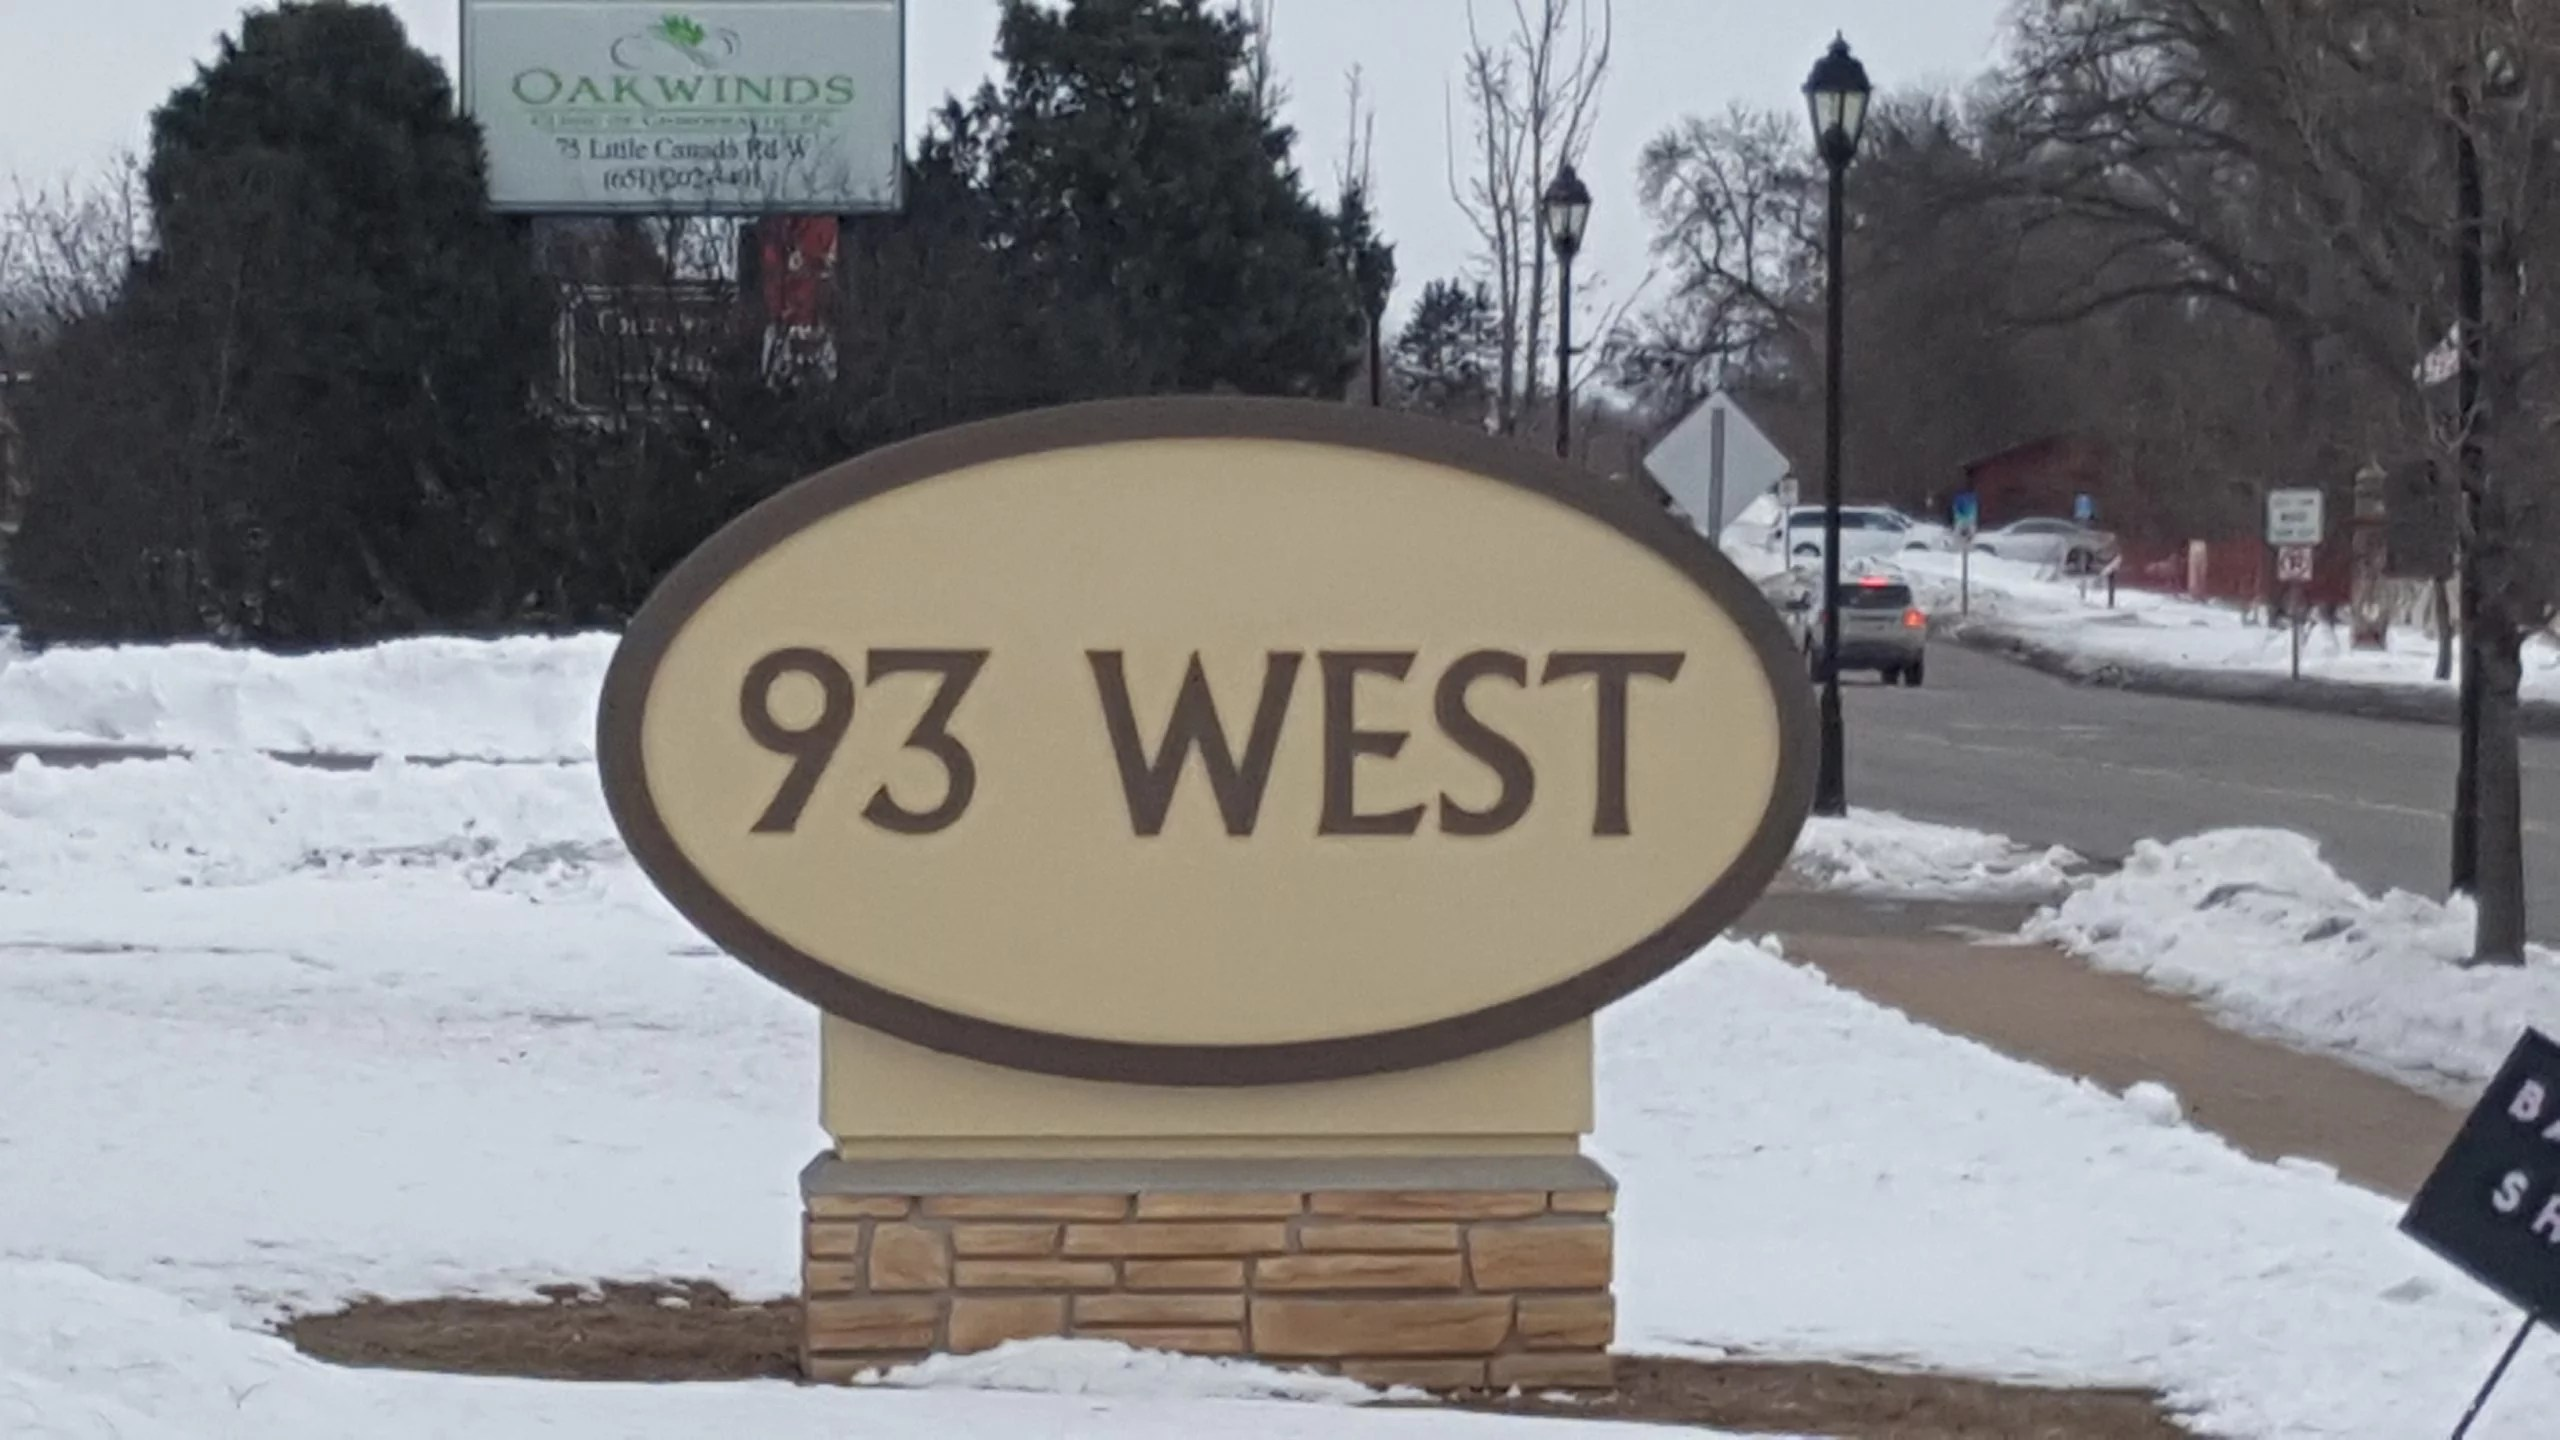 93 West Building sign at 93 Little Canada Rd West, Little Canada, MN 55117